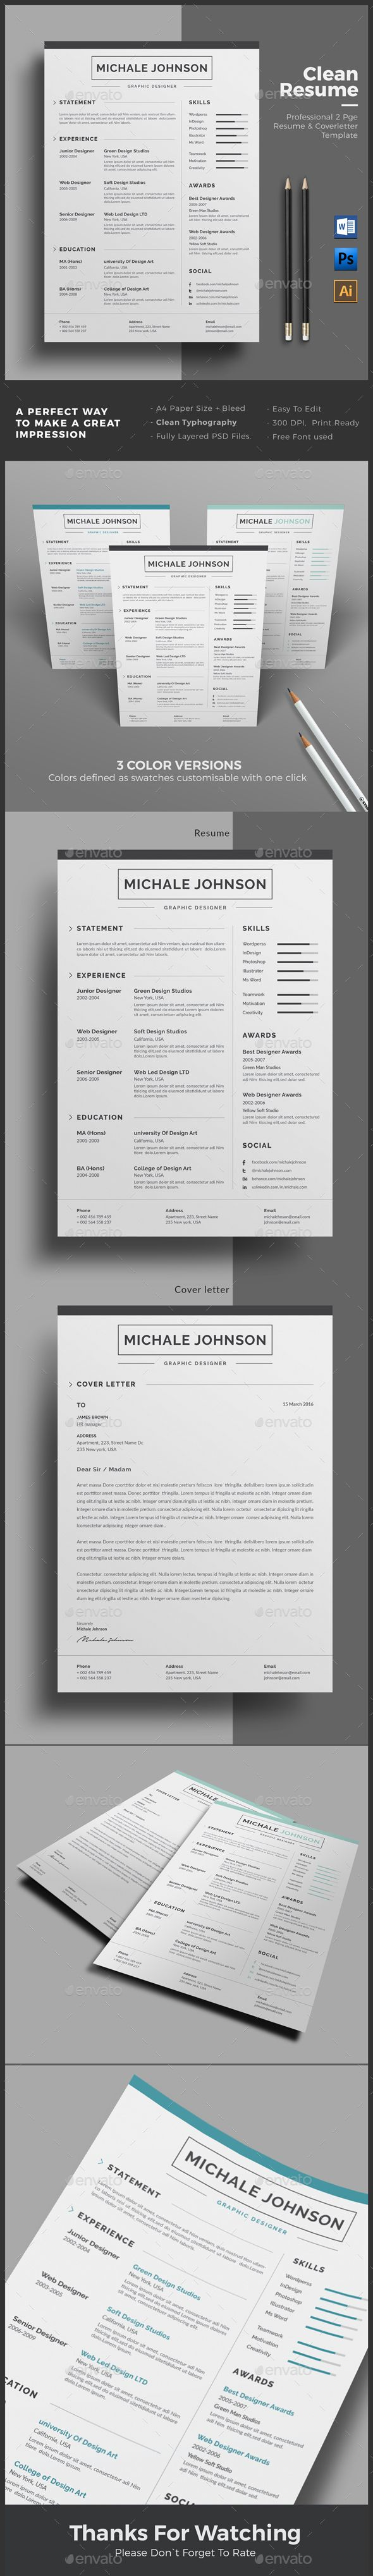 Employee Application Template%0A cover letter template for job application free